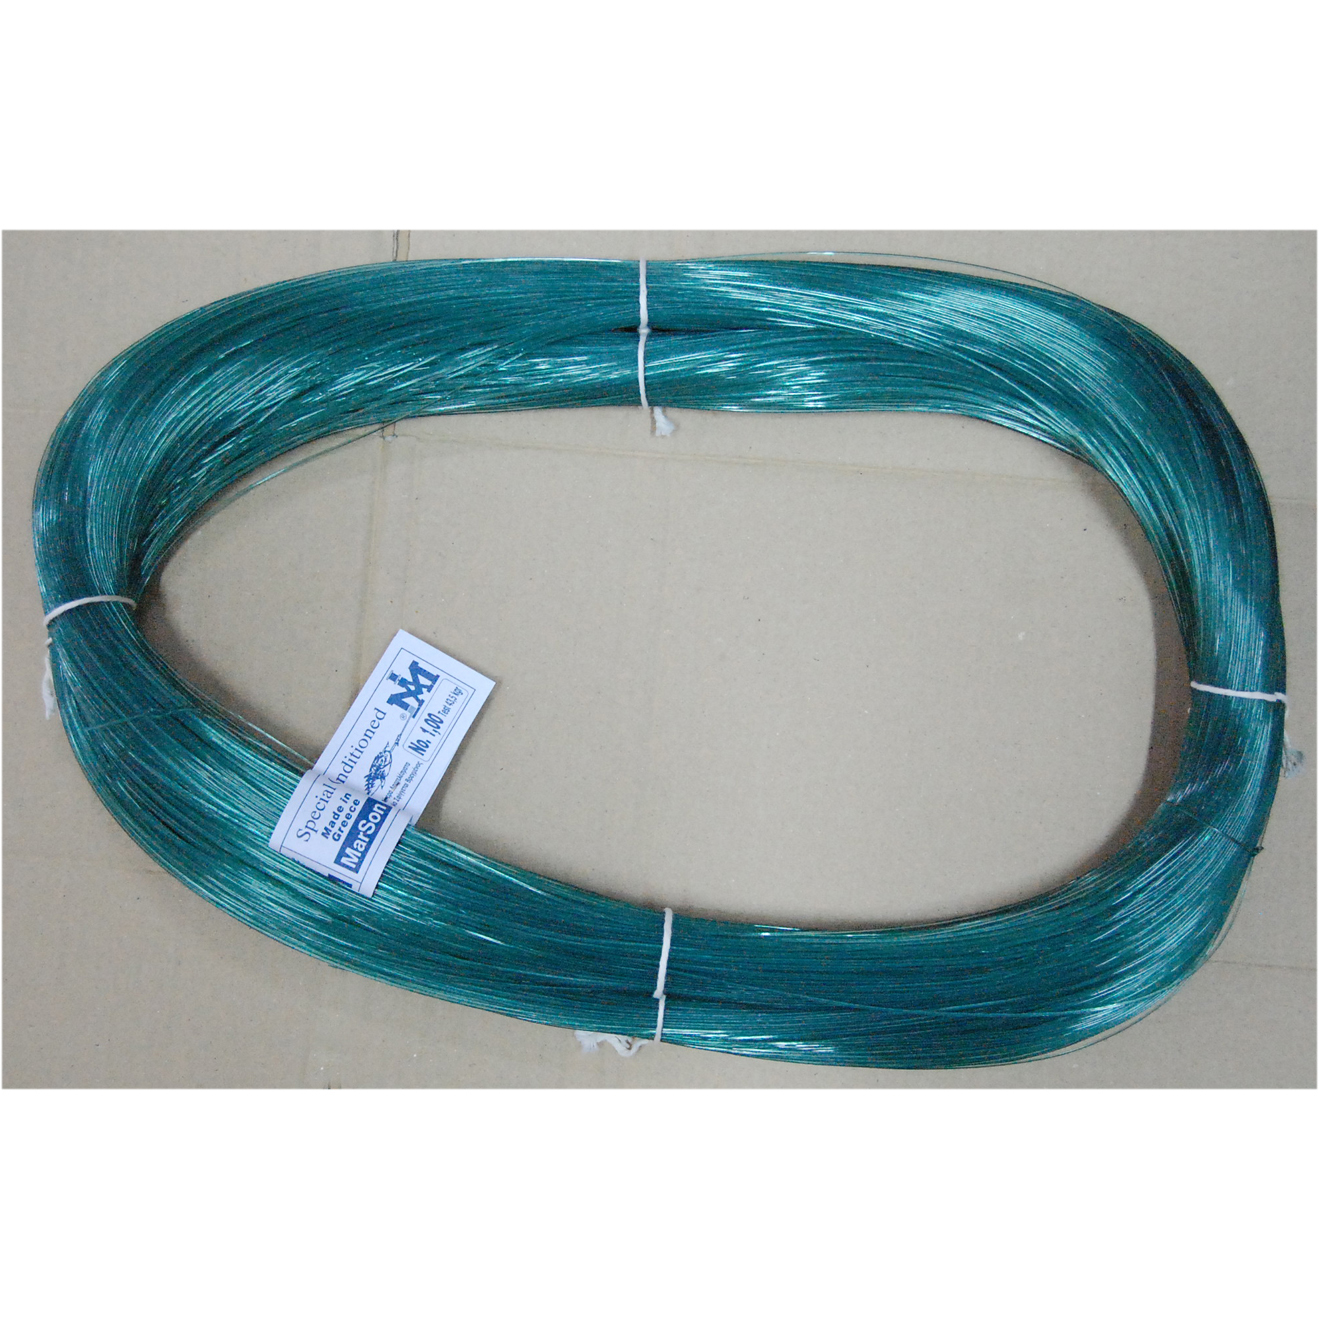 Fishing line 1km